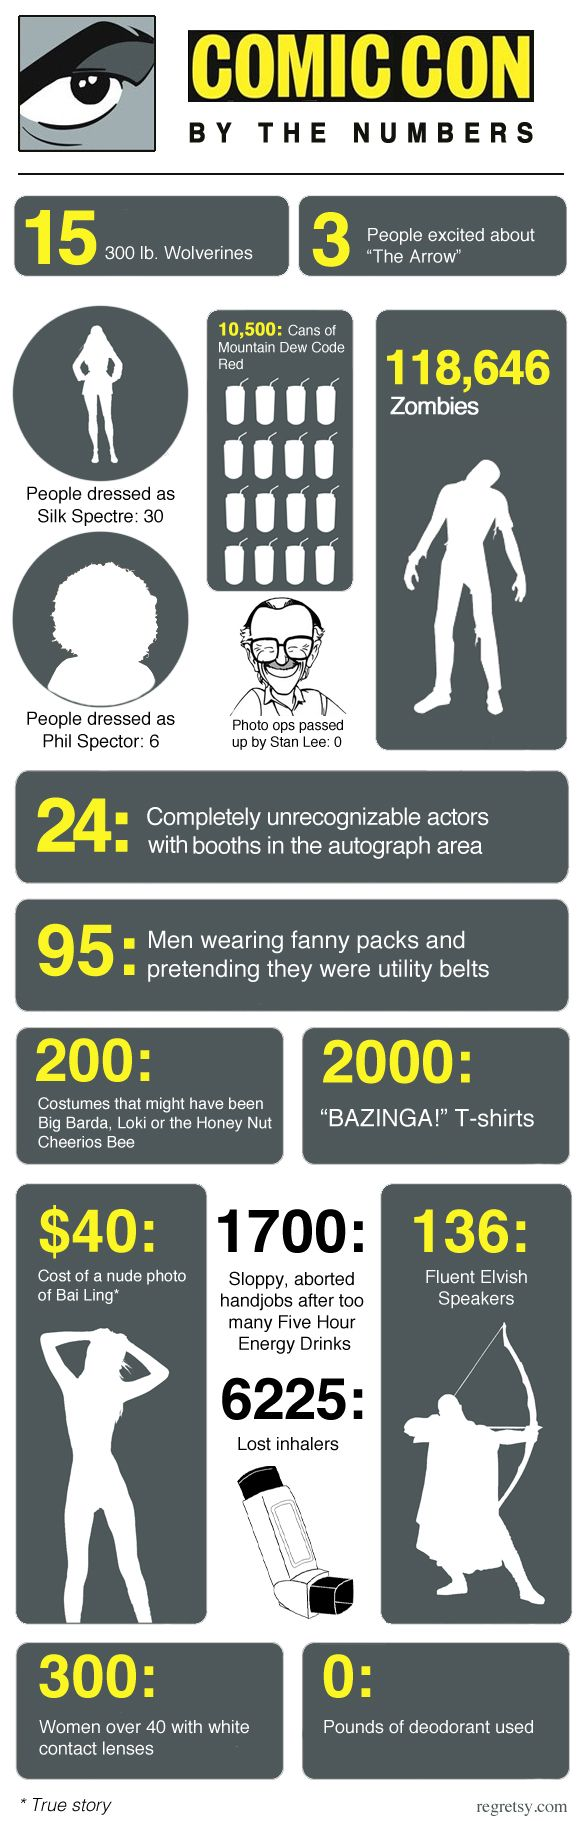 Comic-Con by the numbers.  Hilarious